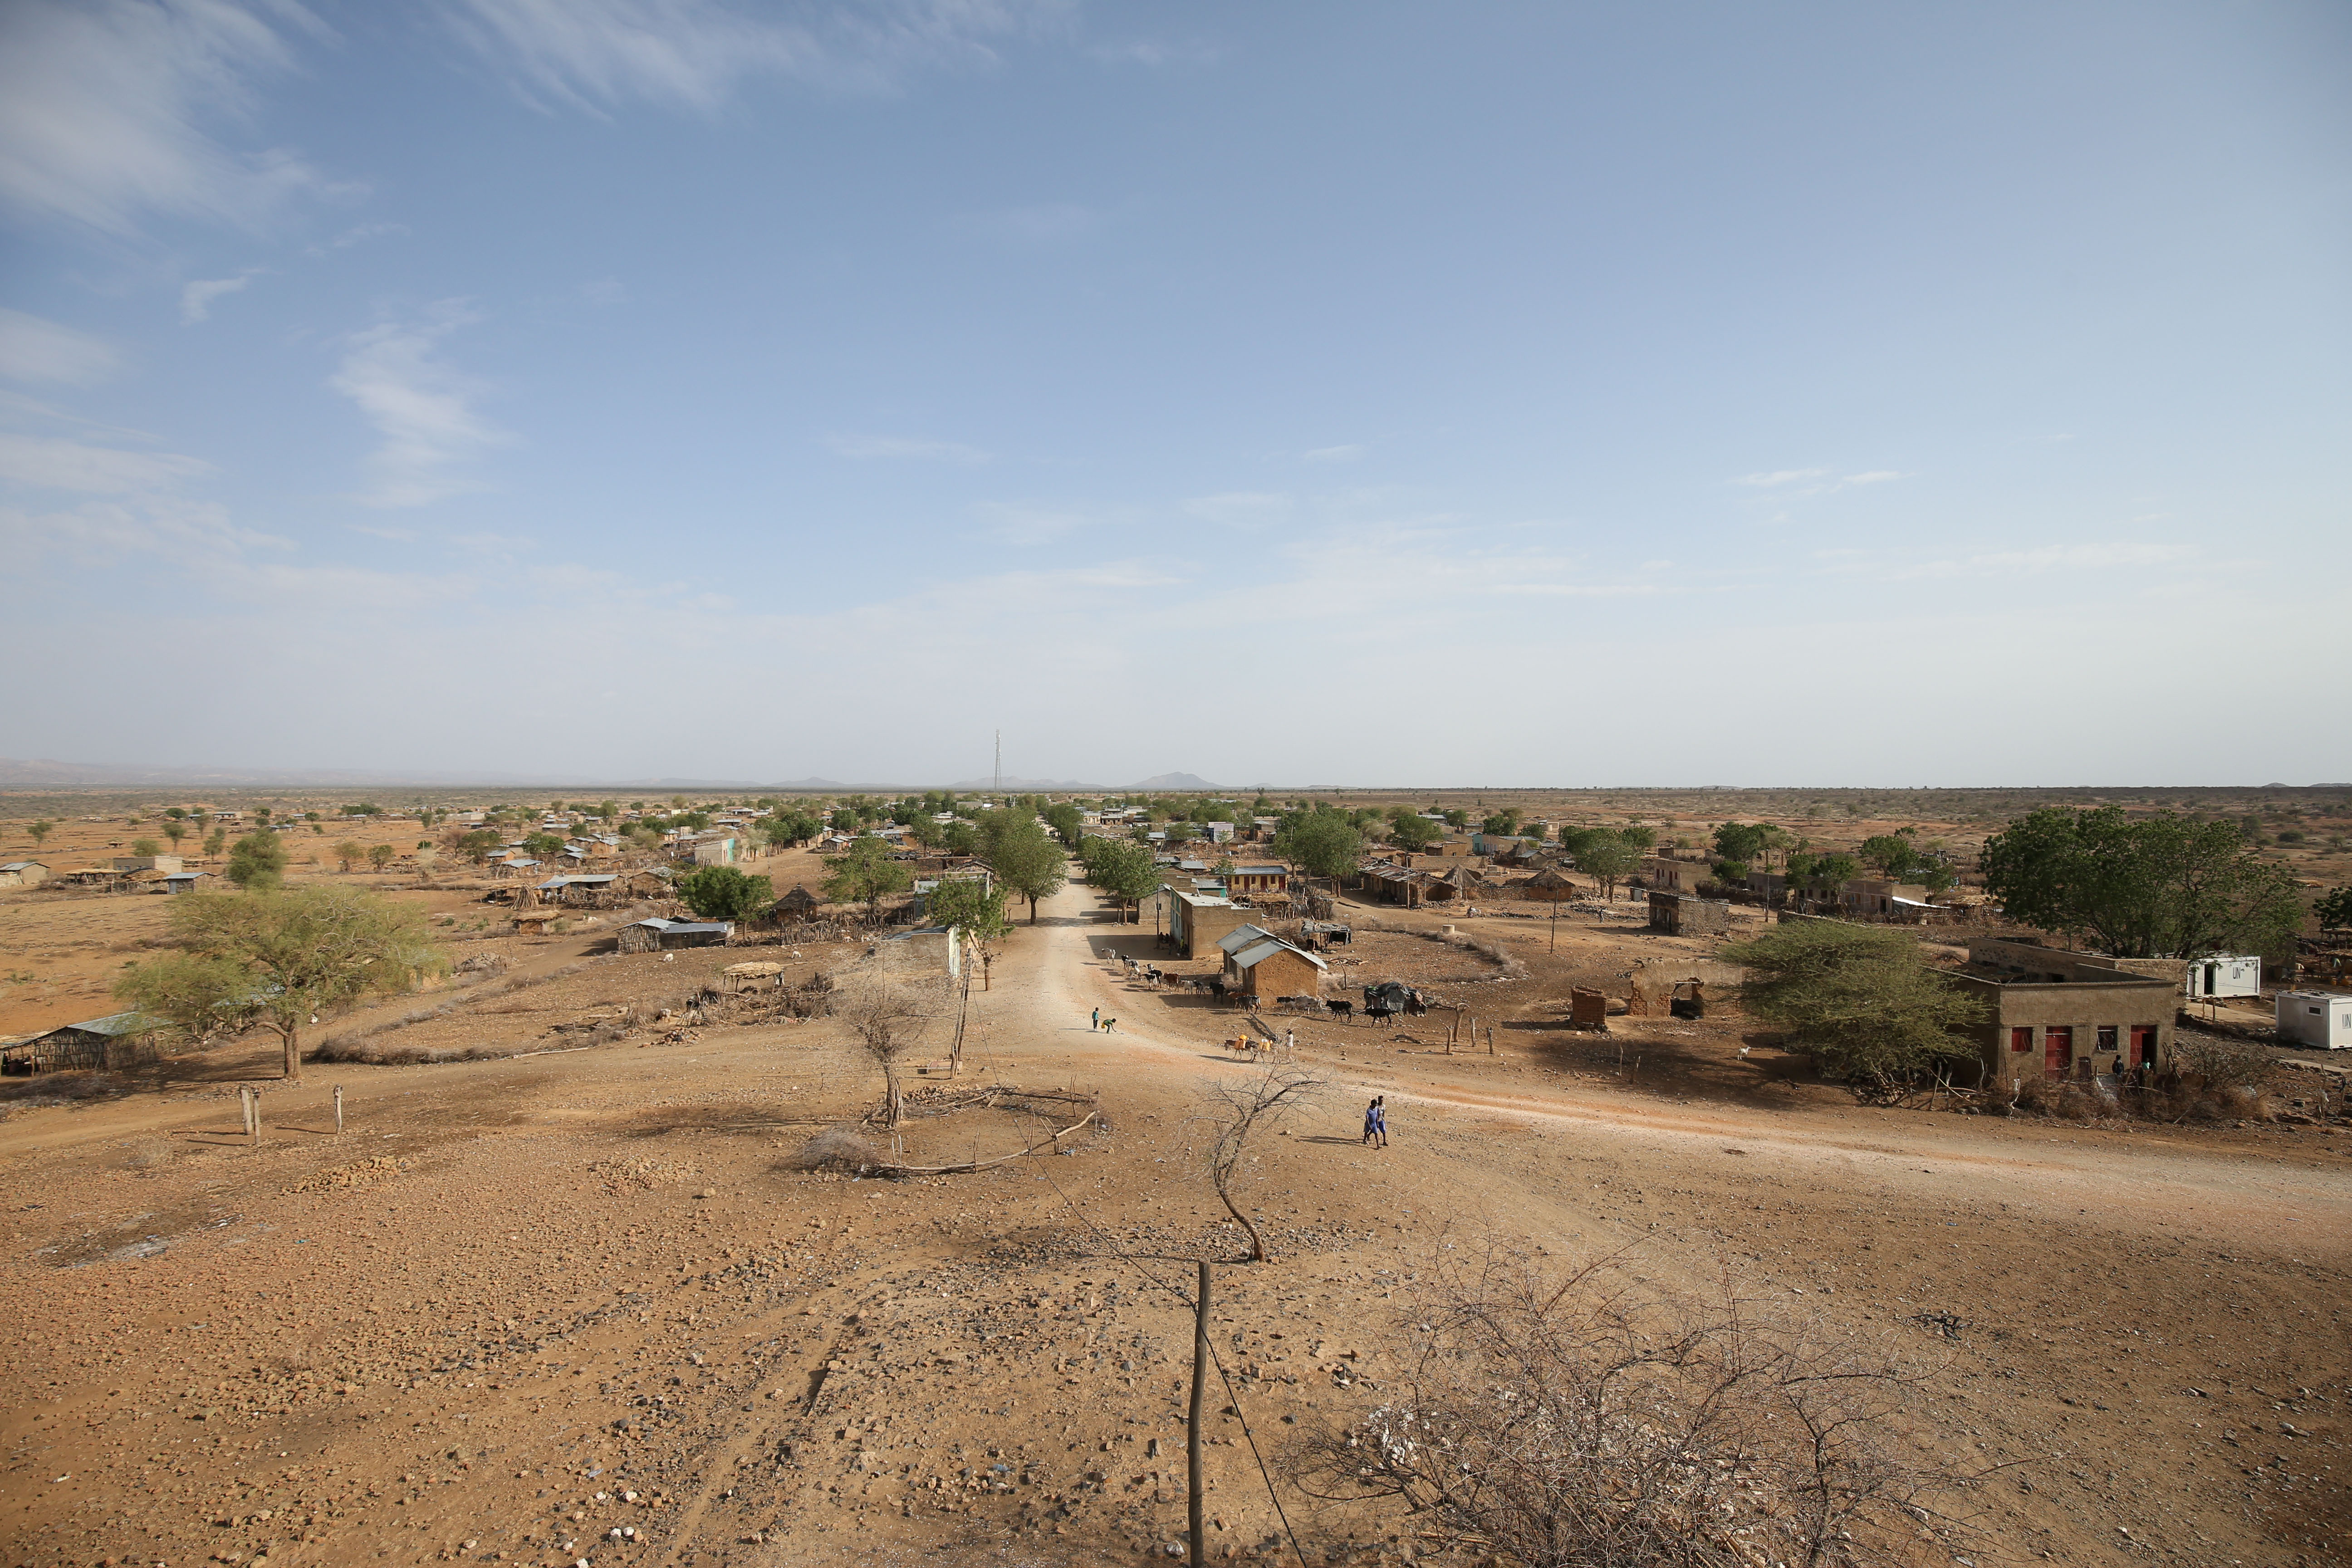 A general view shows Badme, a territorial dispute town between Eritrea and Ethiopia currently occupied by Ethiopia, June 8, 2018. Picture taken June 8, 2018.